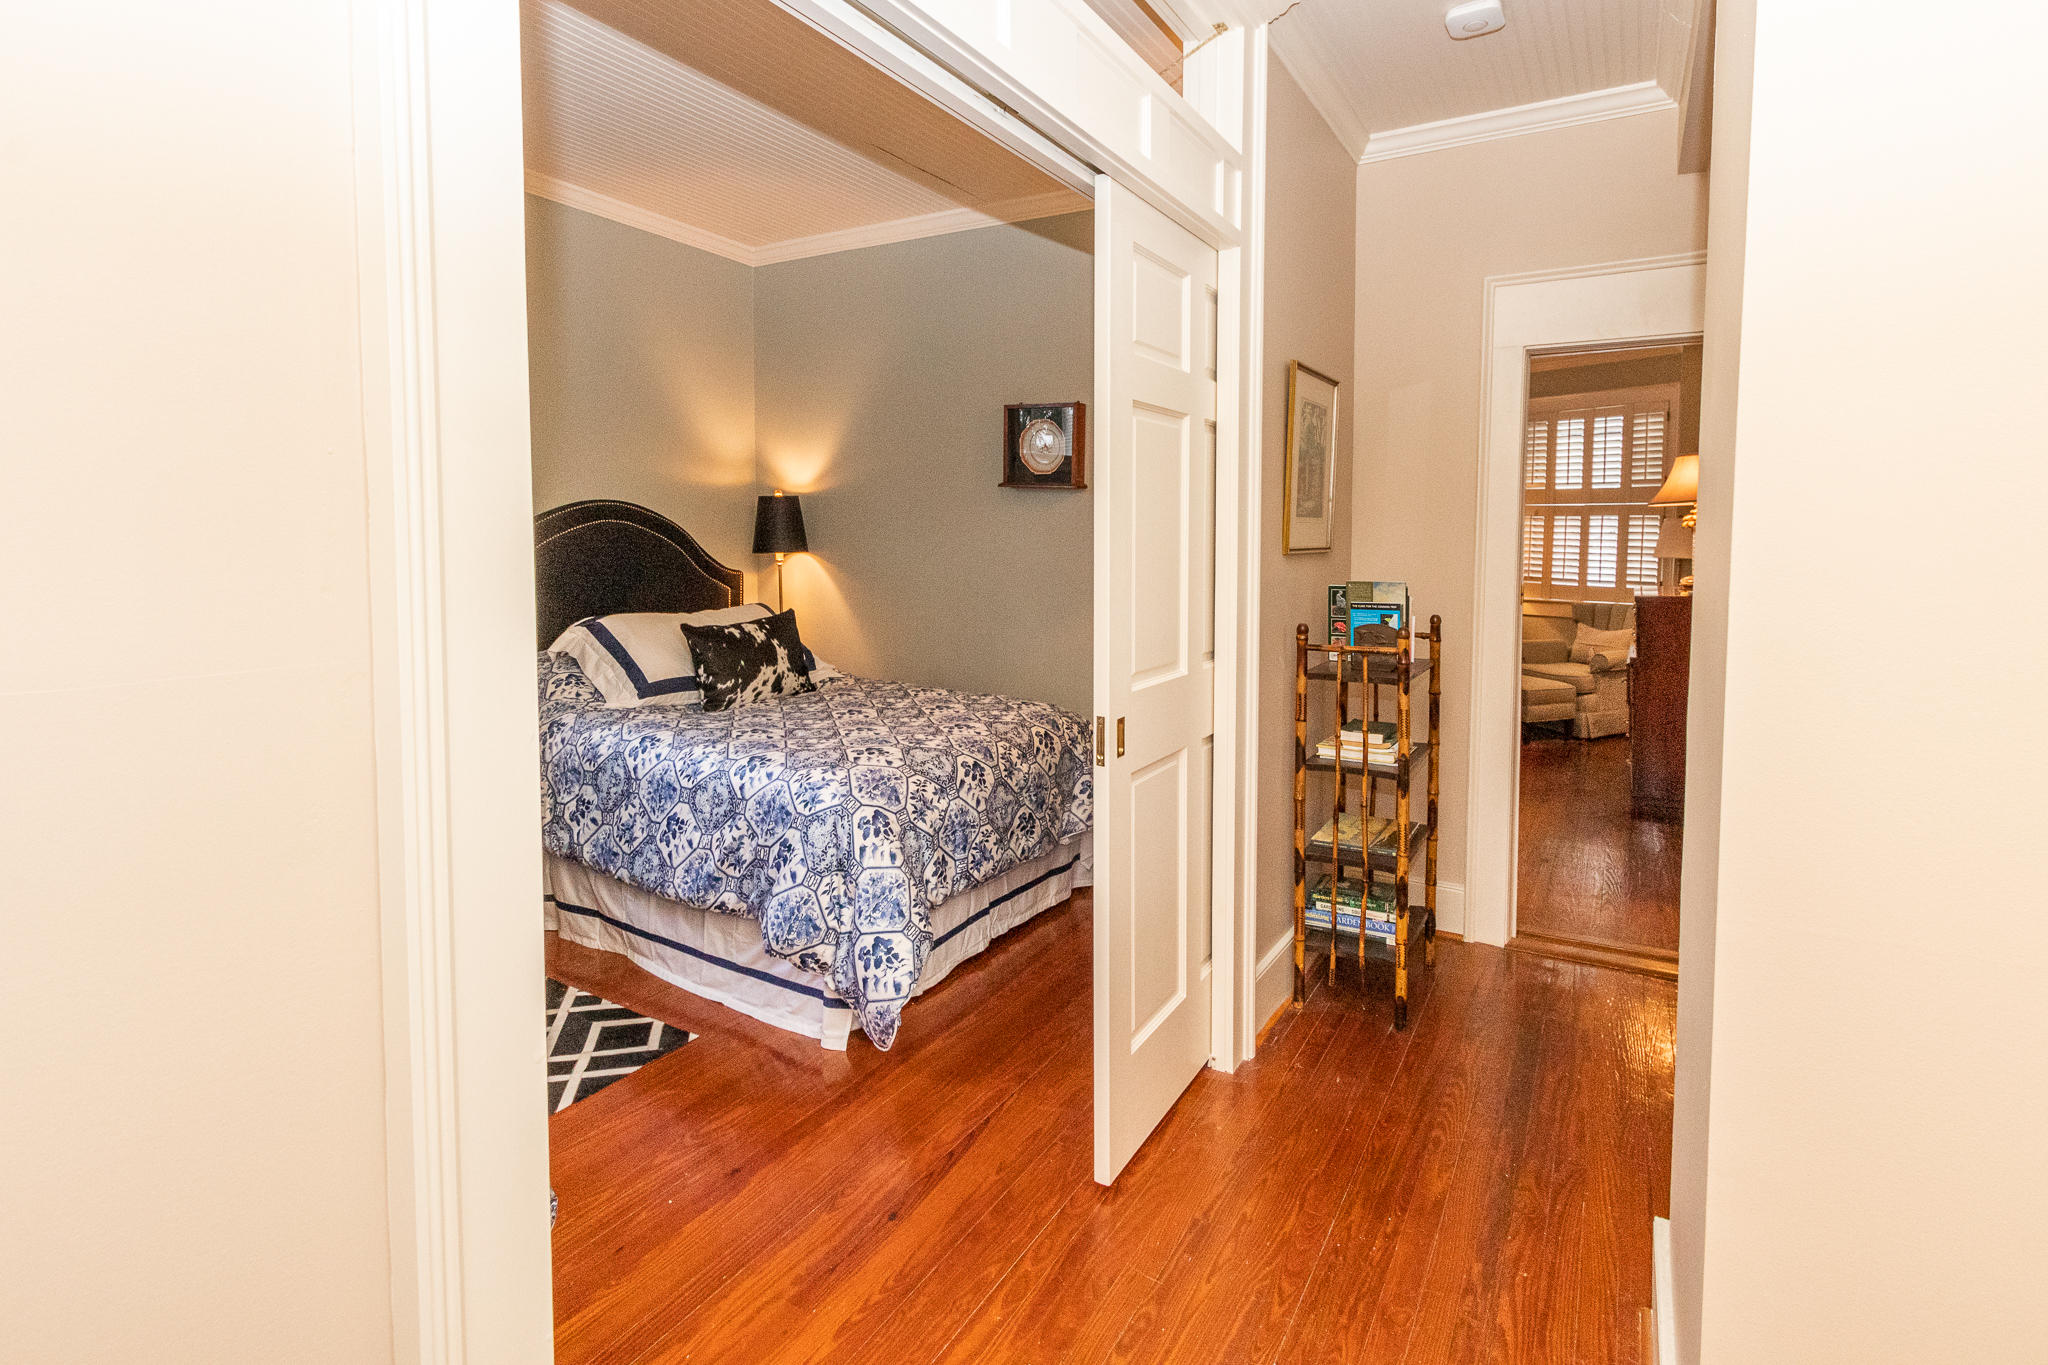 South of Broad Homes For Sale - 164 Tradd, Charleston, SC - 4